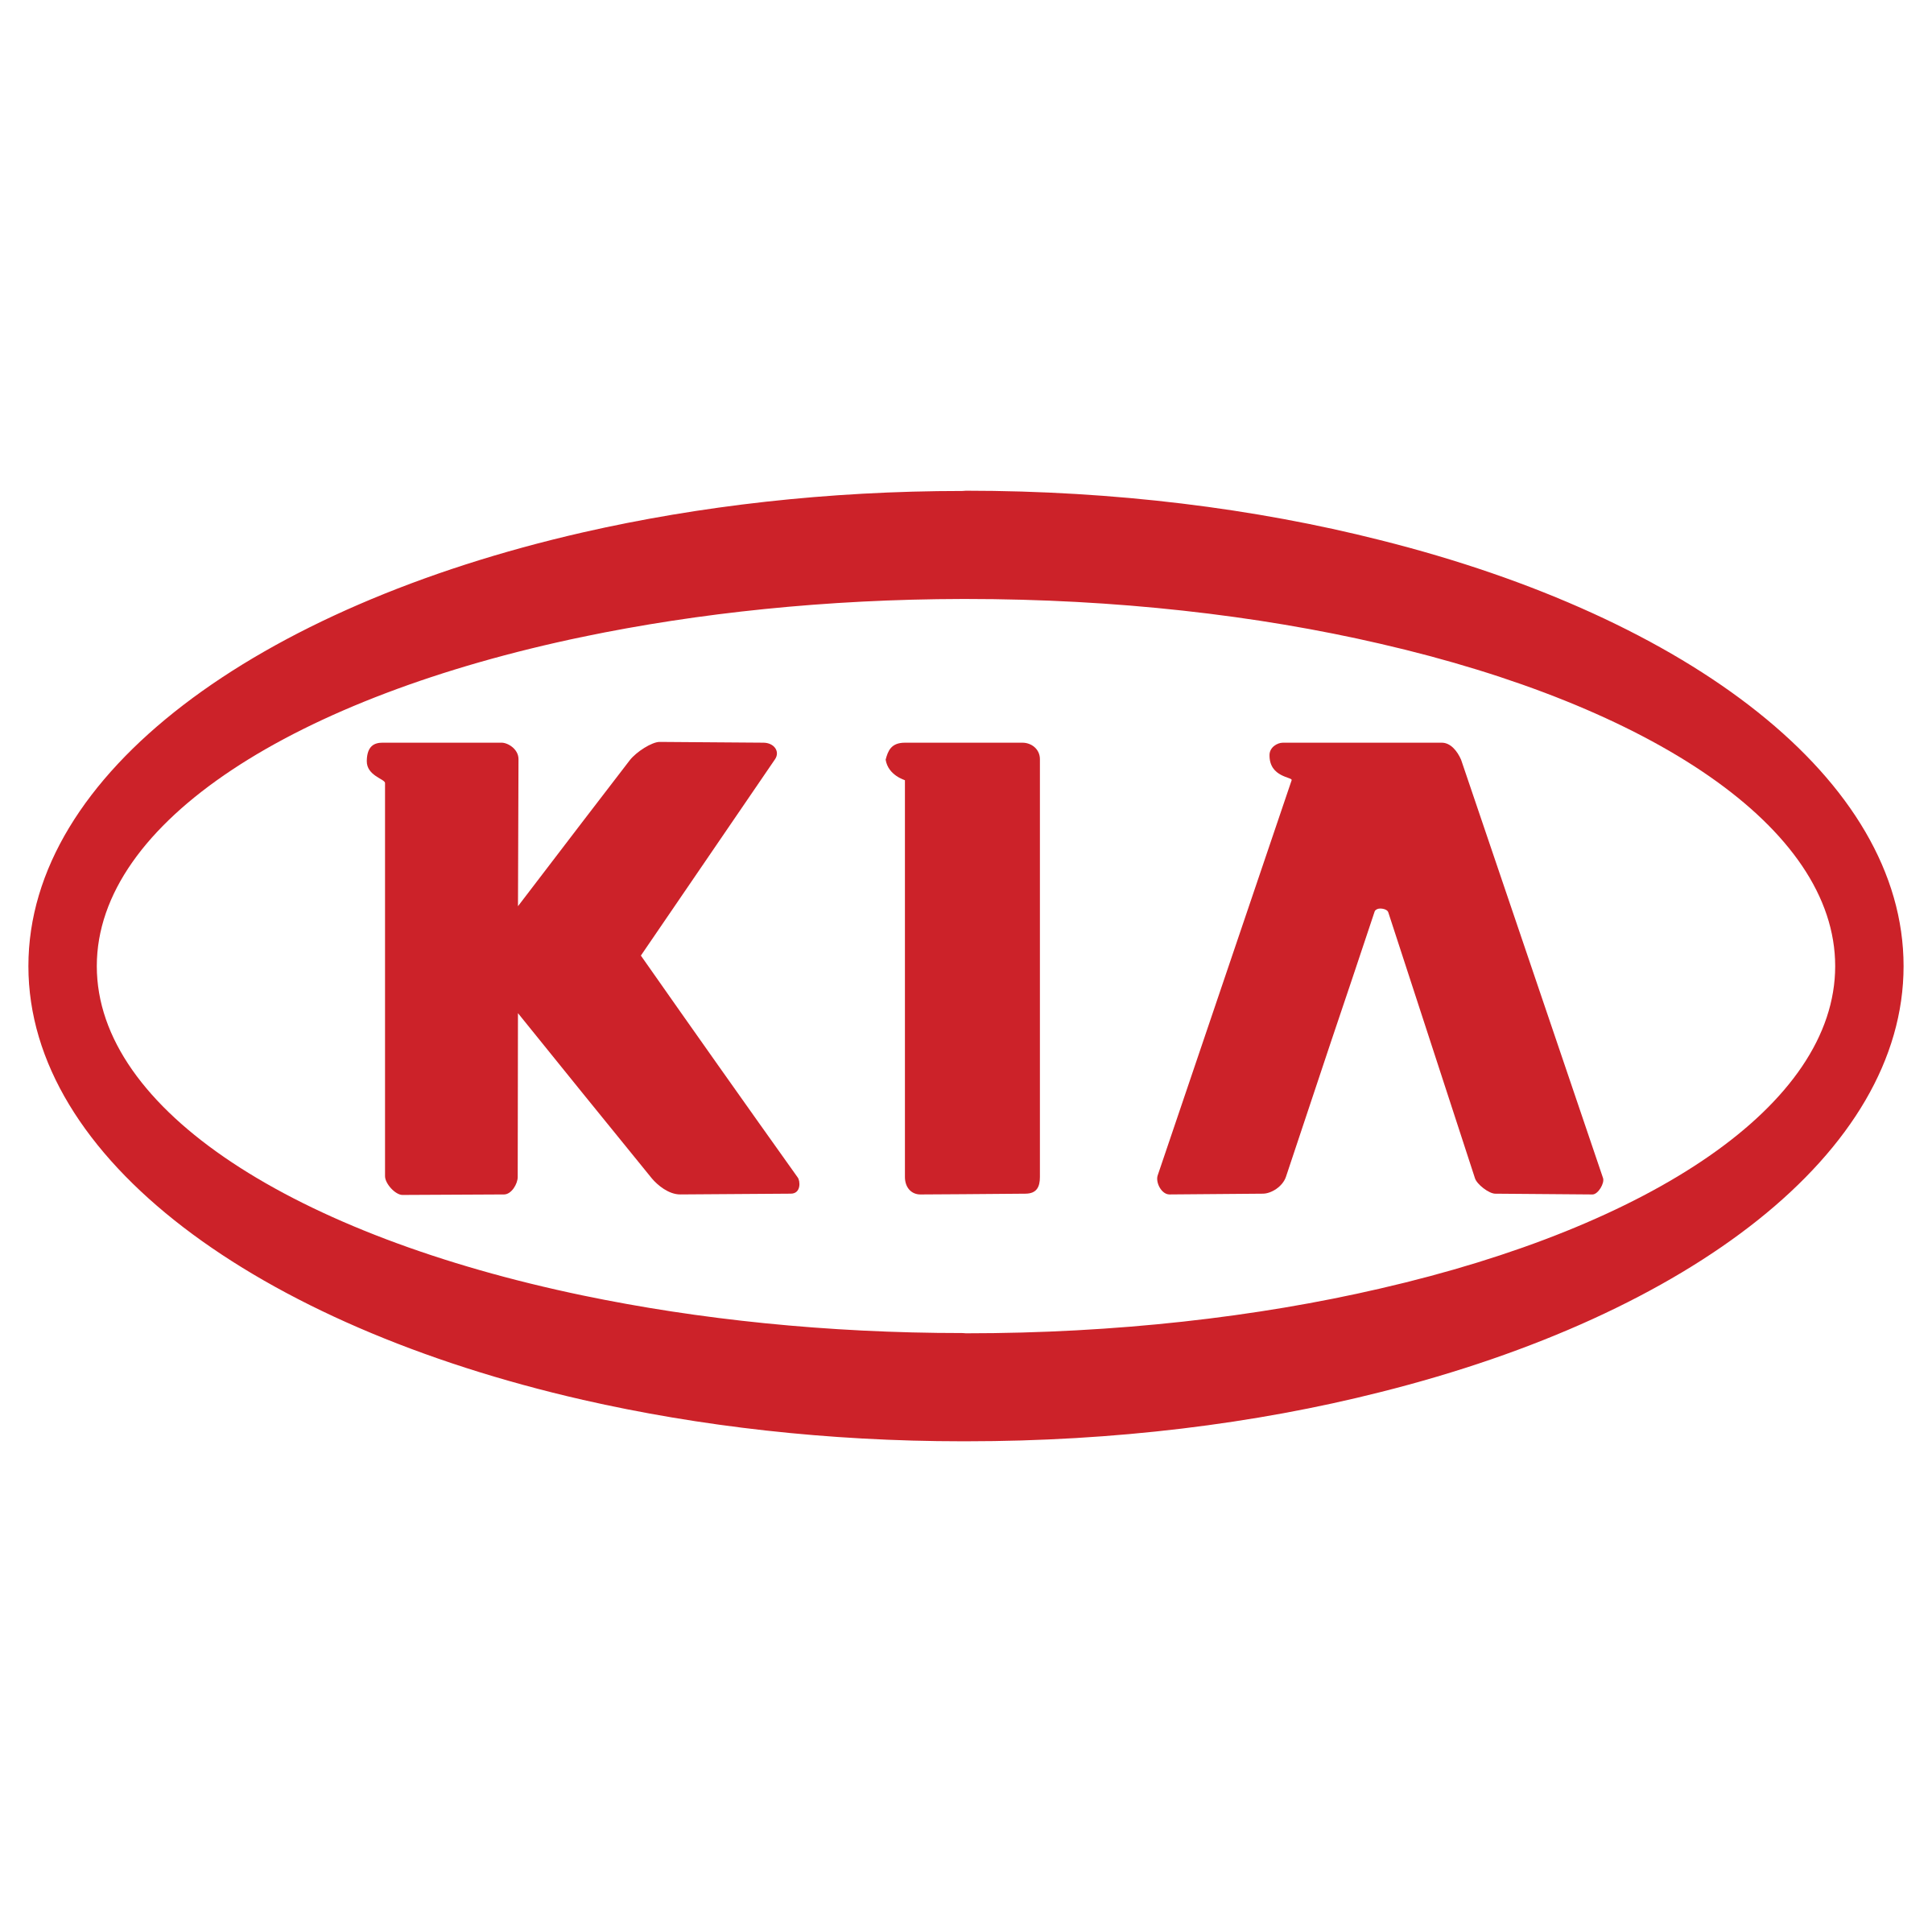 Kia Logo PNG Transparent & SVG Vector.